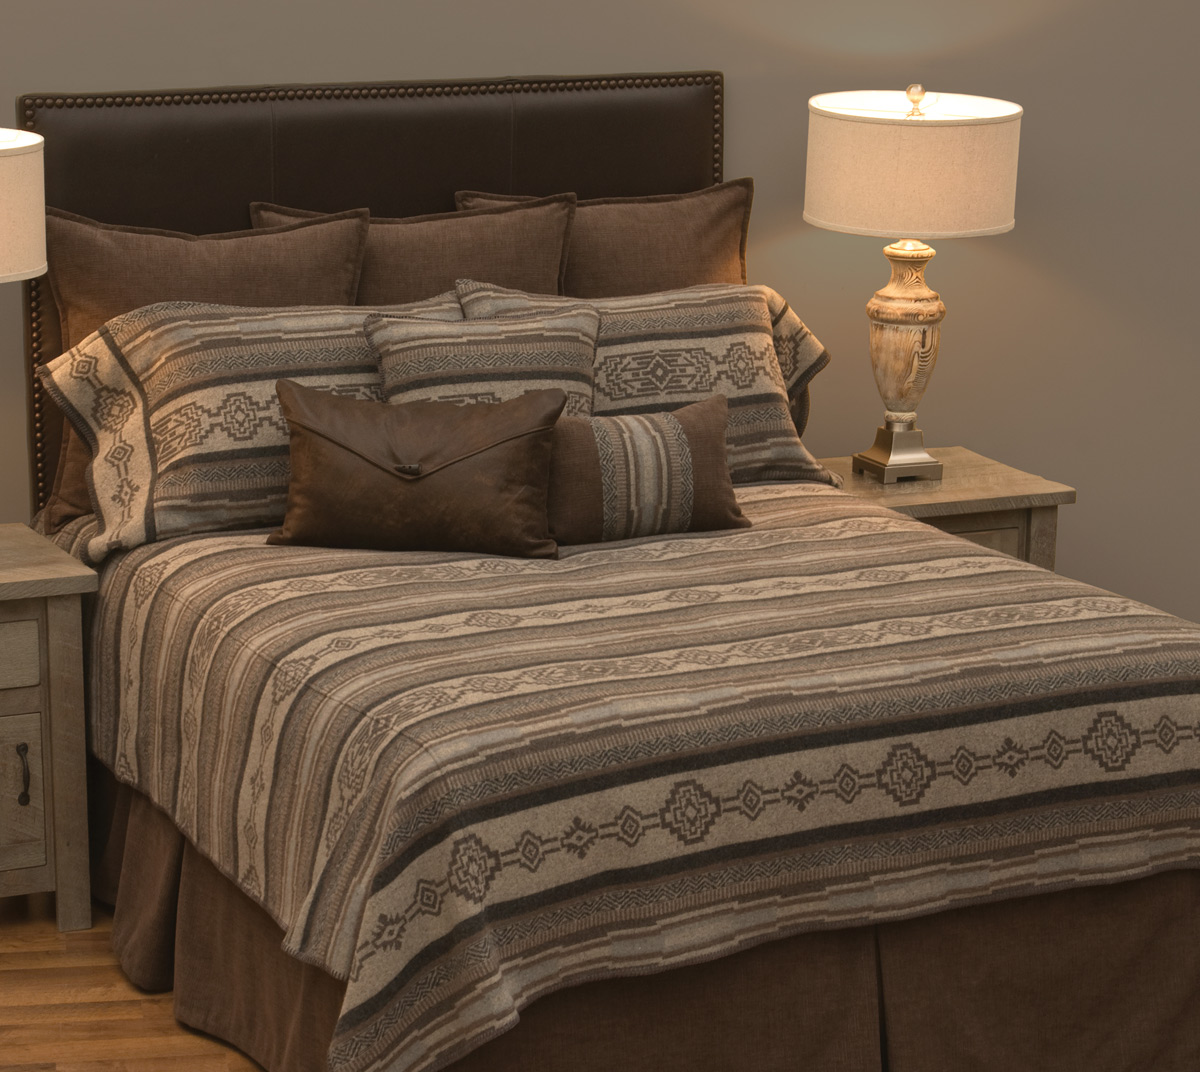 Black Forest Decor Lodge lux deluxe bed set - super queen